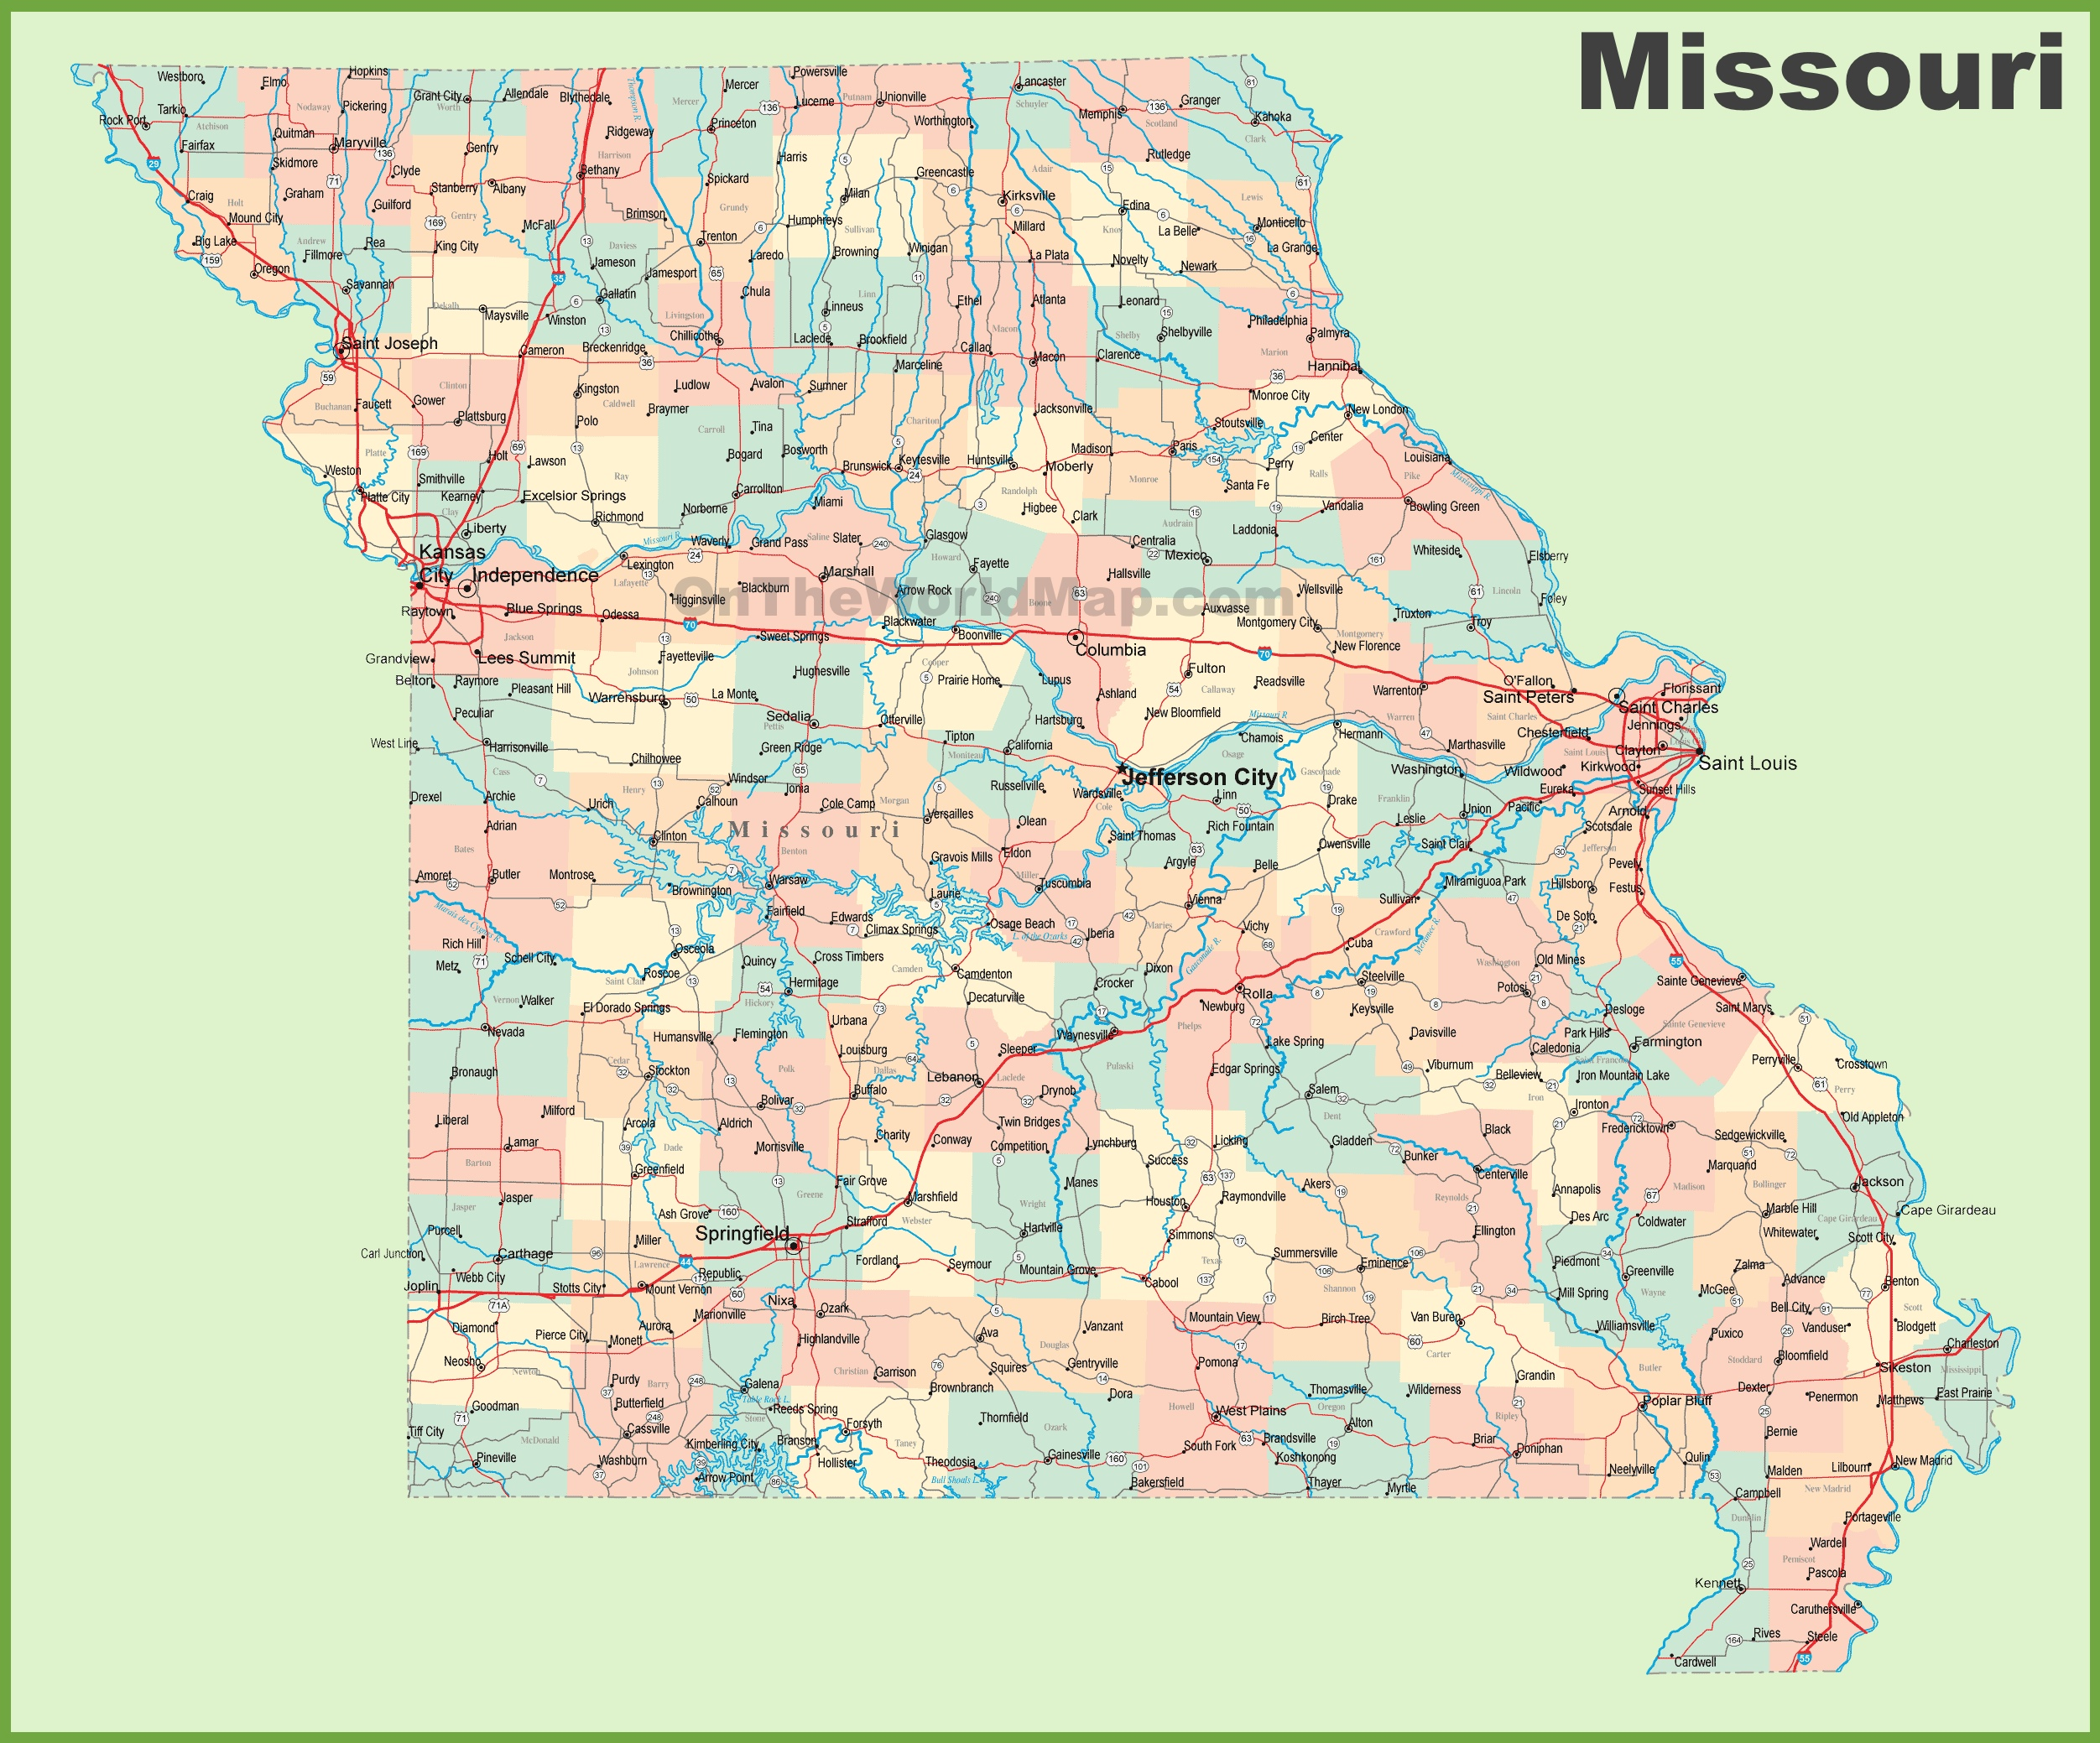 Missouri State Maps USA Maps Of Missouri MO - Map of state of missouri